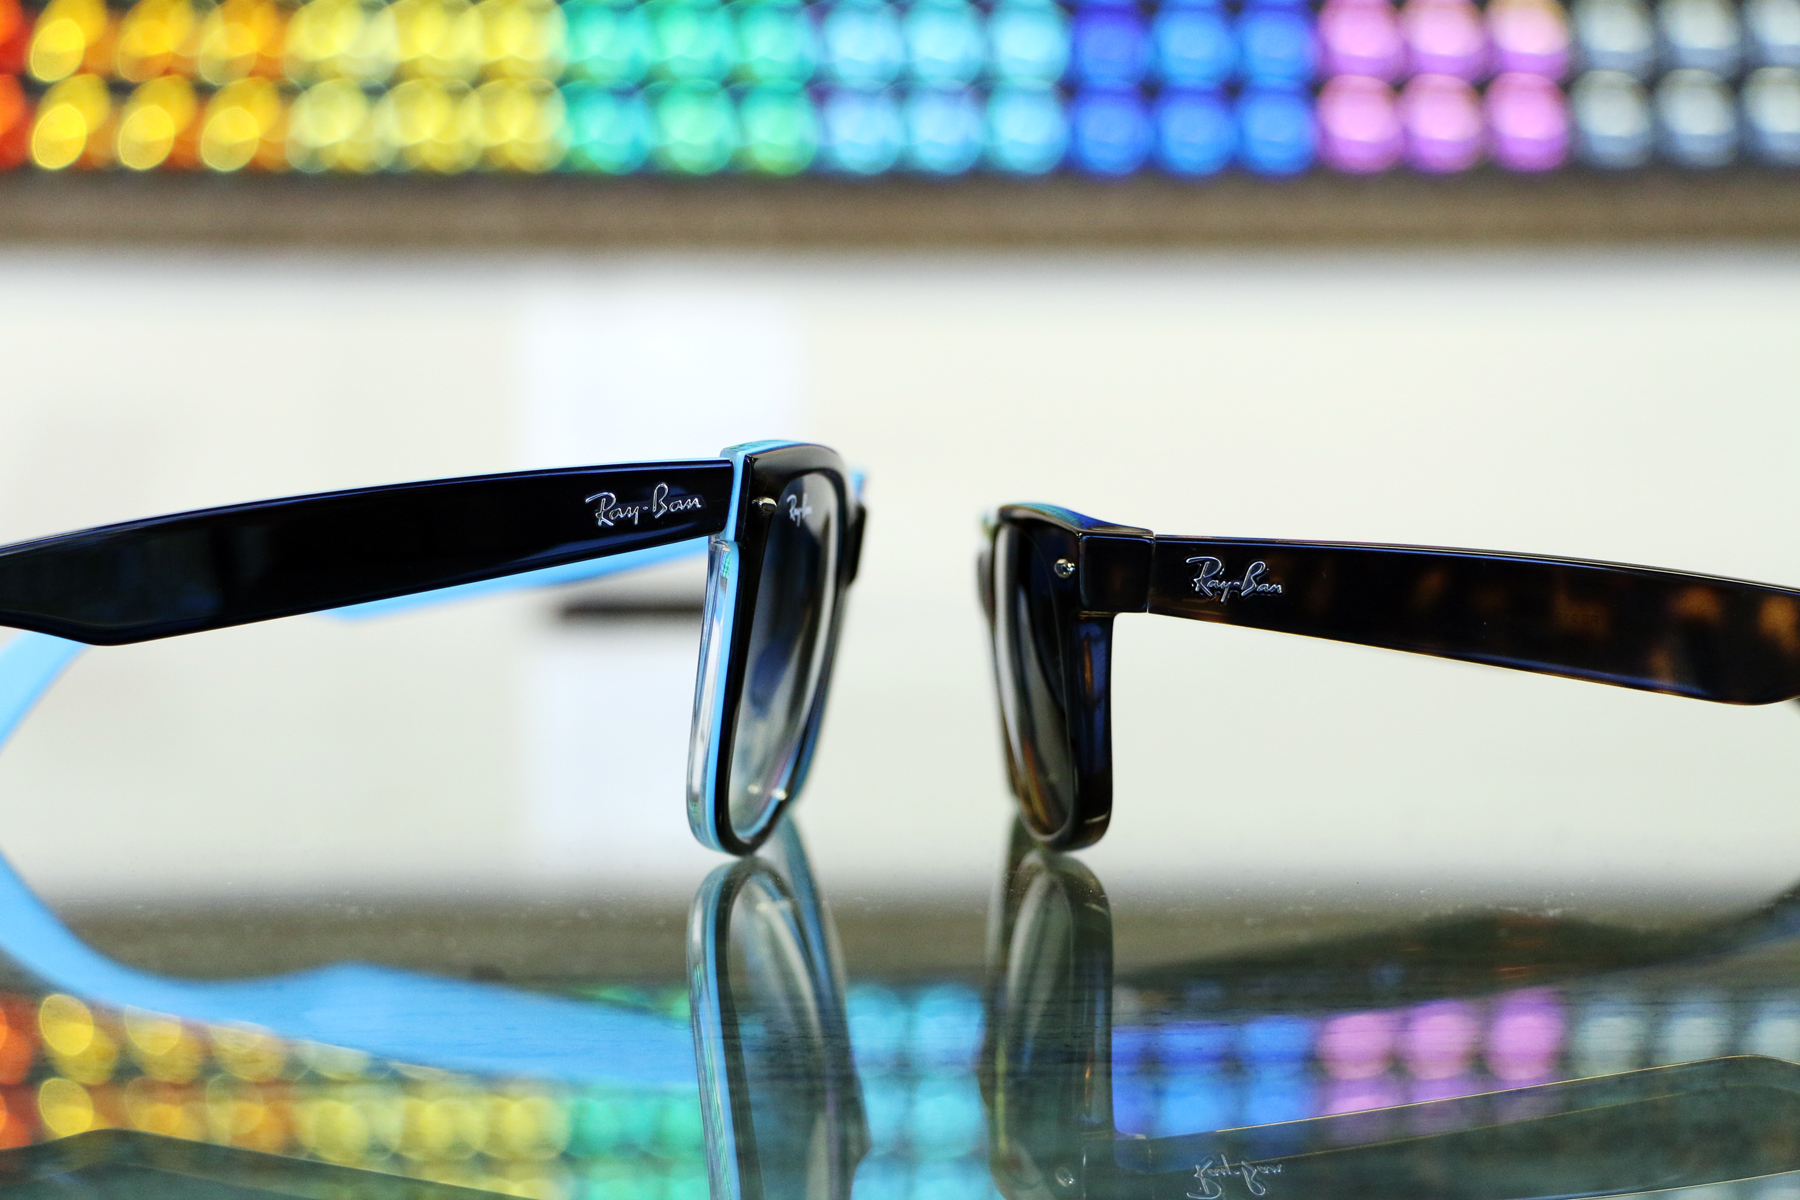 4994d511ba Ray-Ban New Wayfarer vs. Original Wayfarer